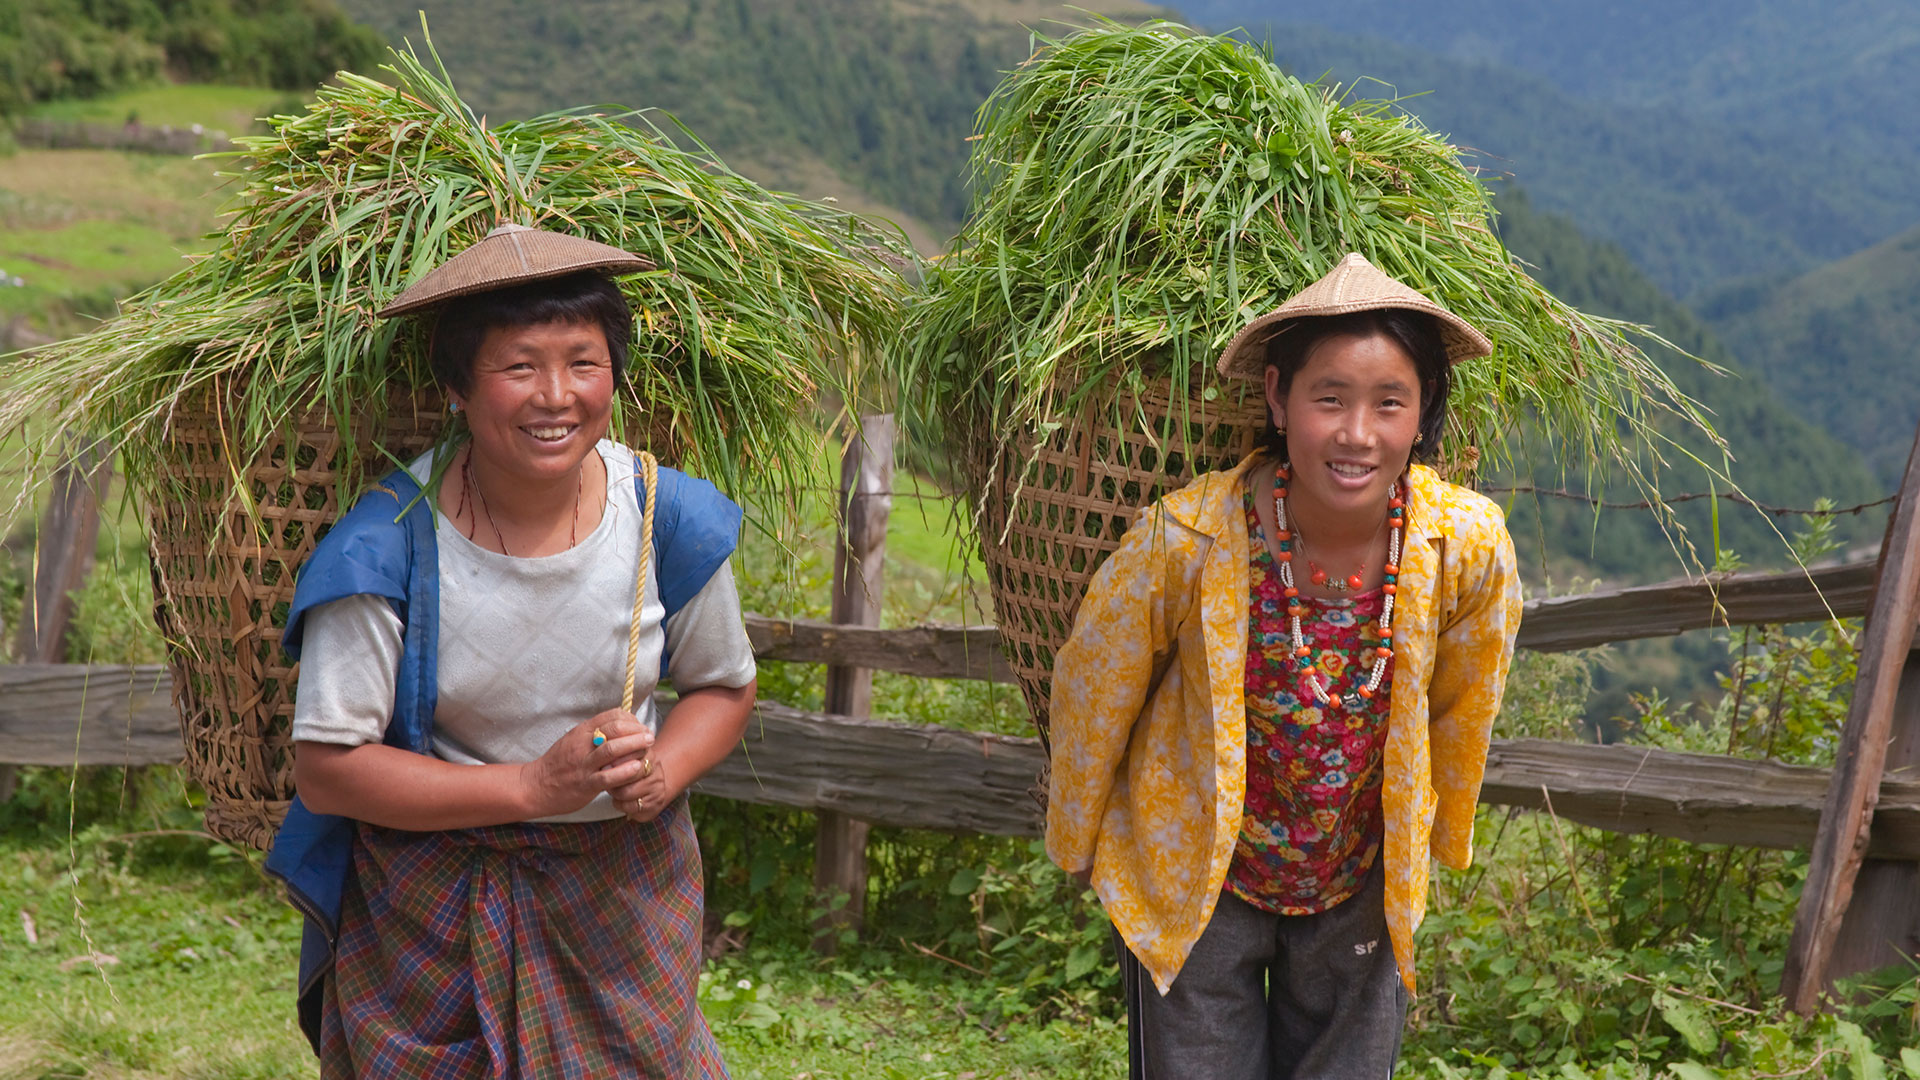 Two women farmers carrying baskets of grass, Bhutan